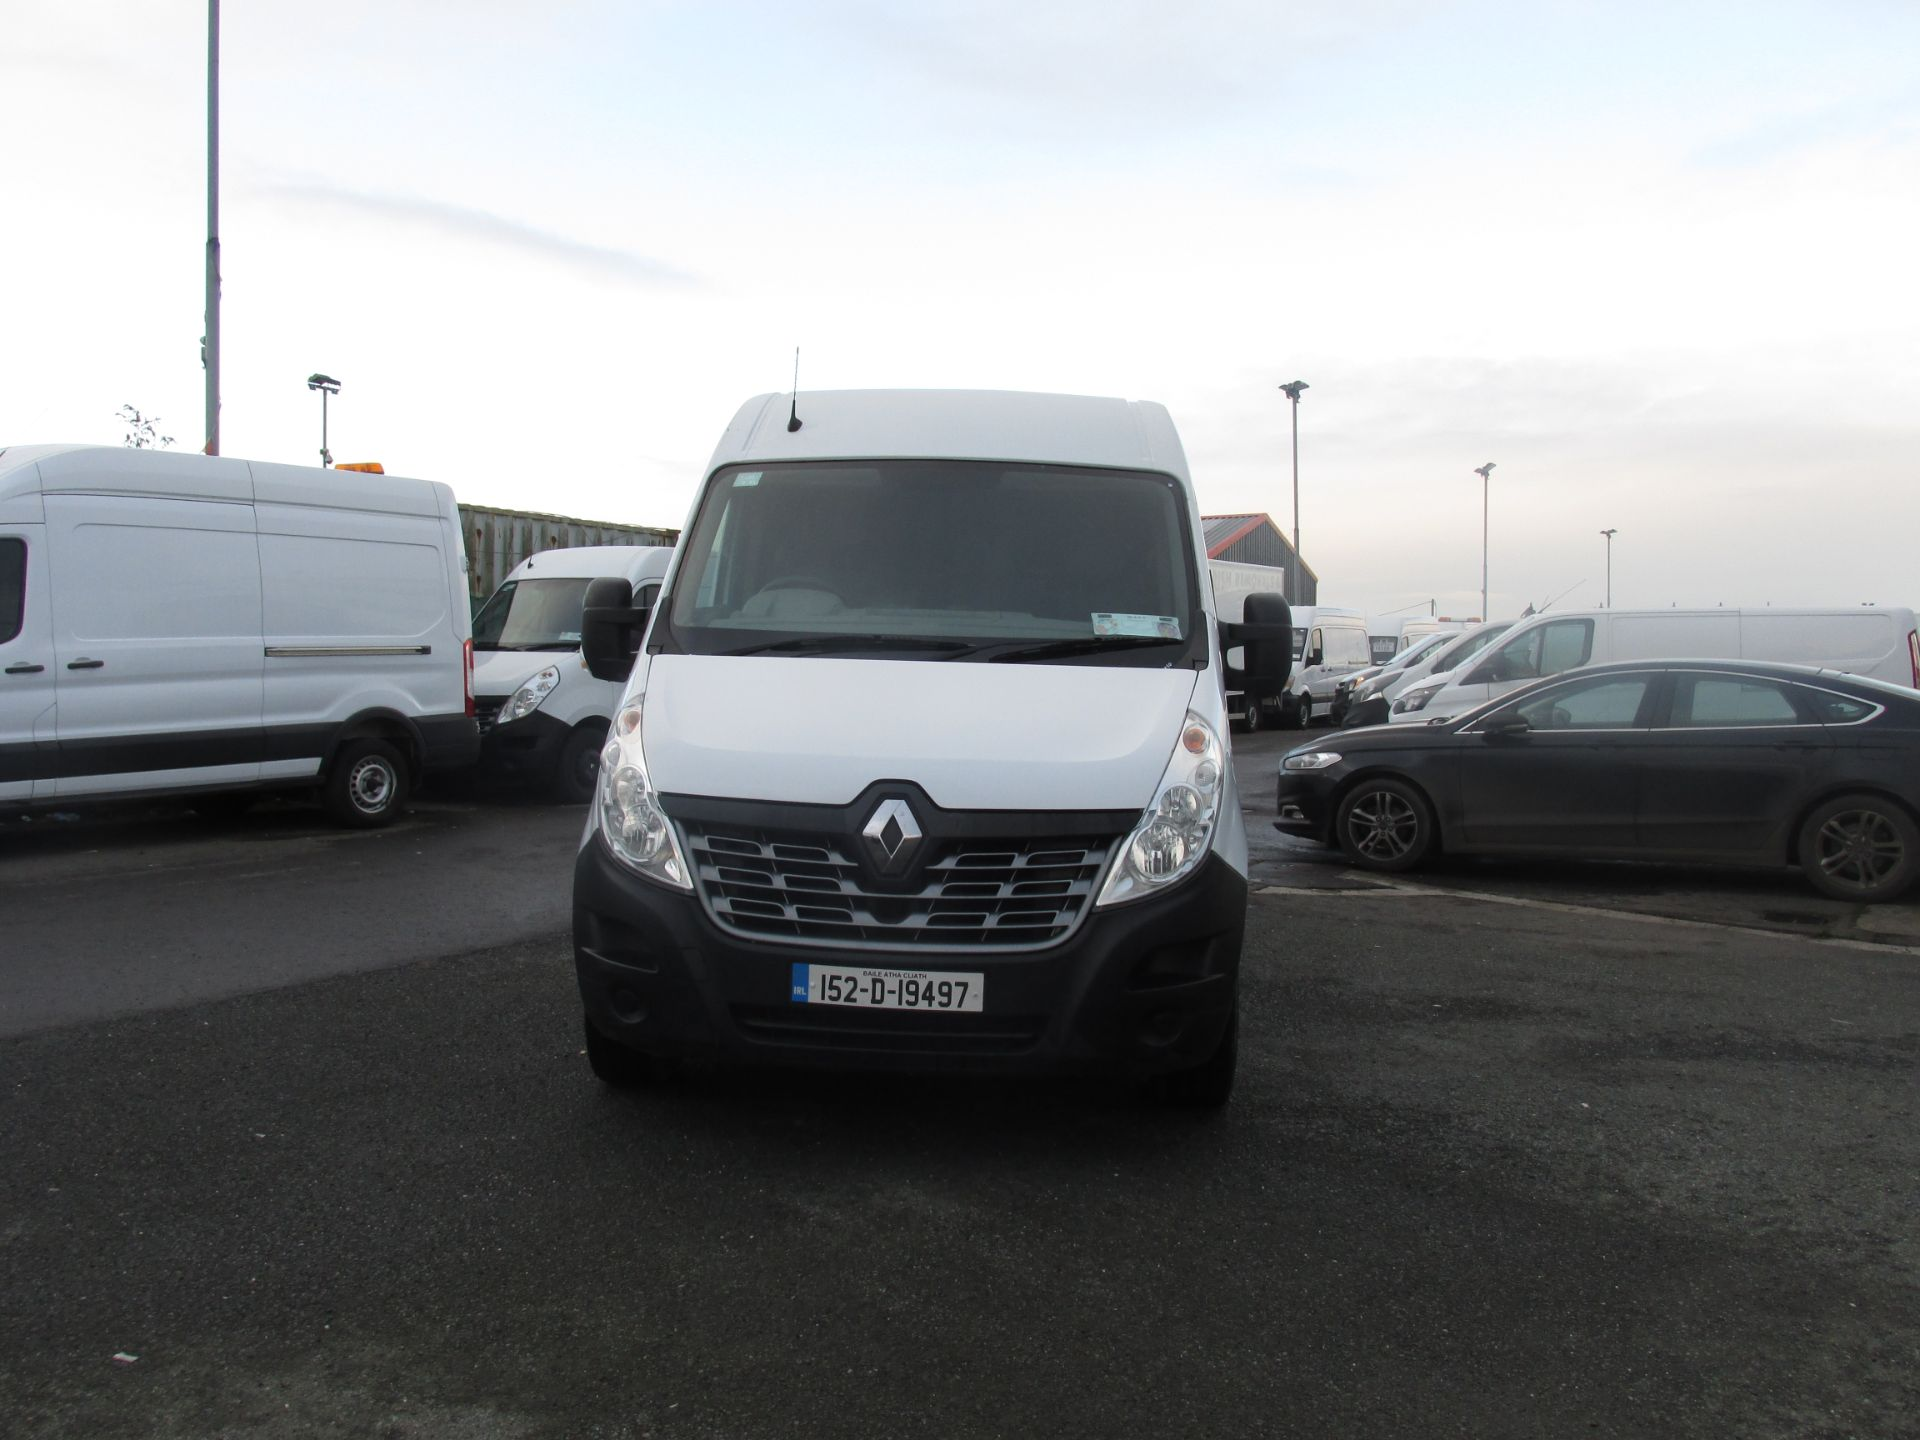 2015 Renault Master III FWD LM35 DCI 125 Business 3DR (152D19497) Image 8